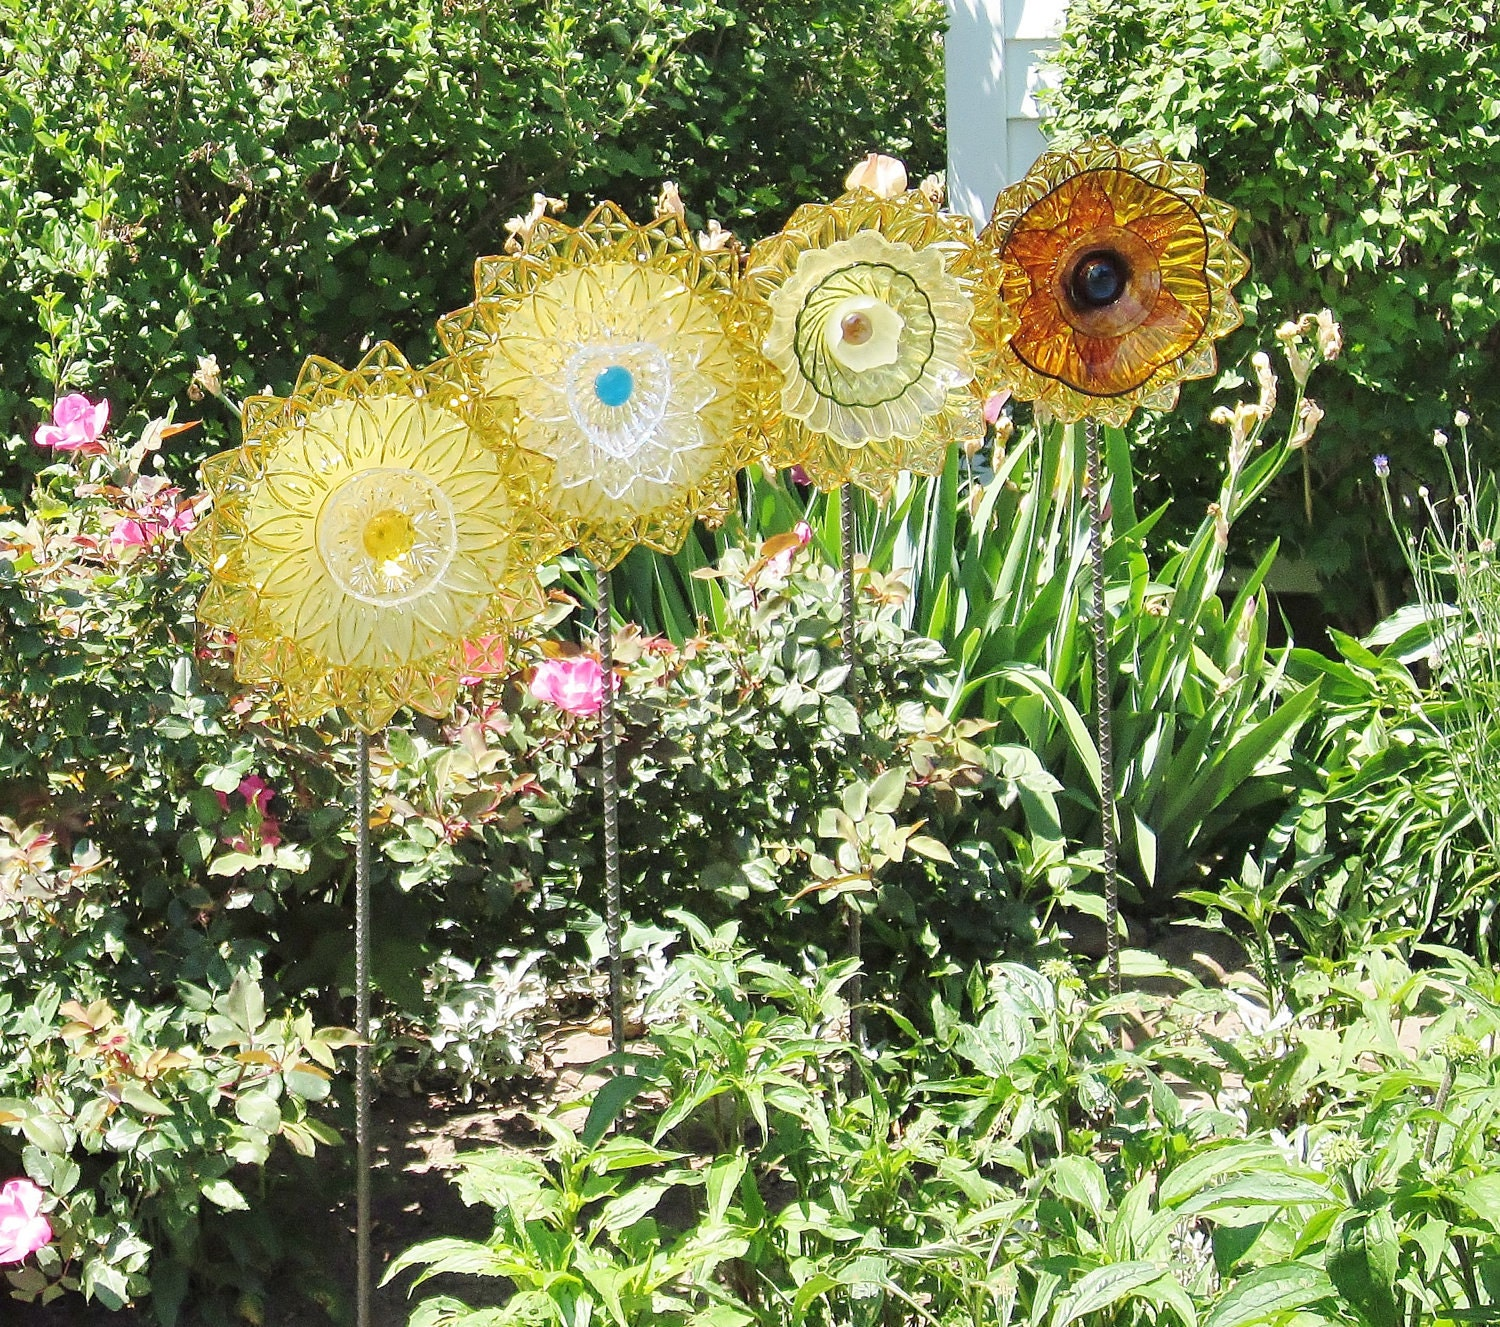 Yard Art Garden Decor Vintage Glass Flower Suncatcher